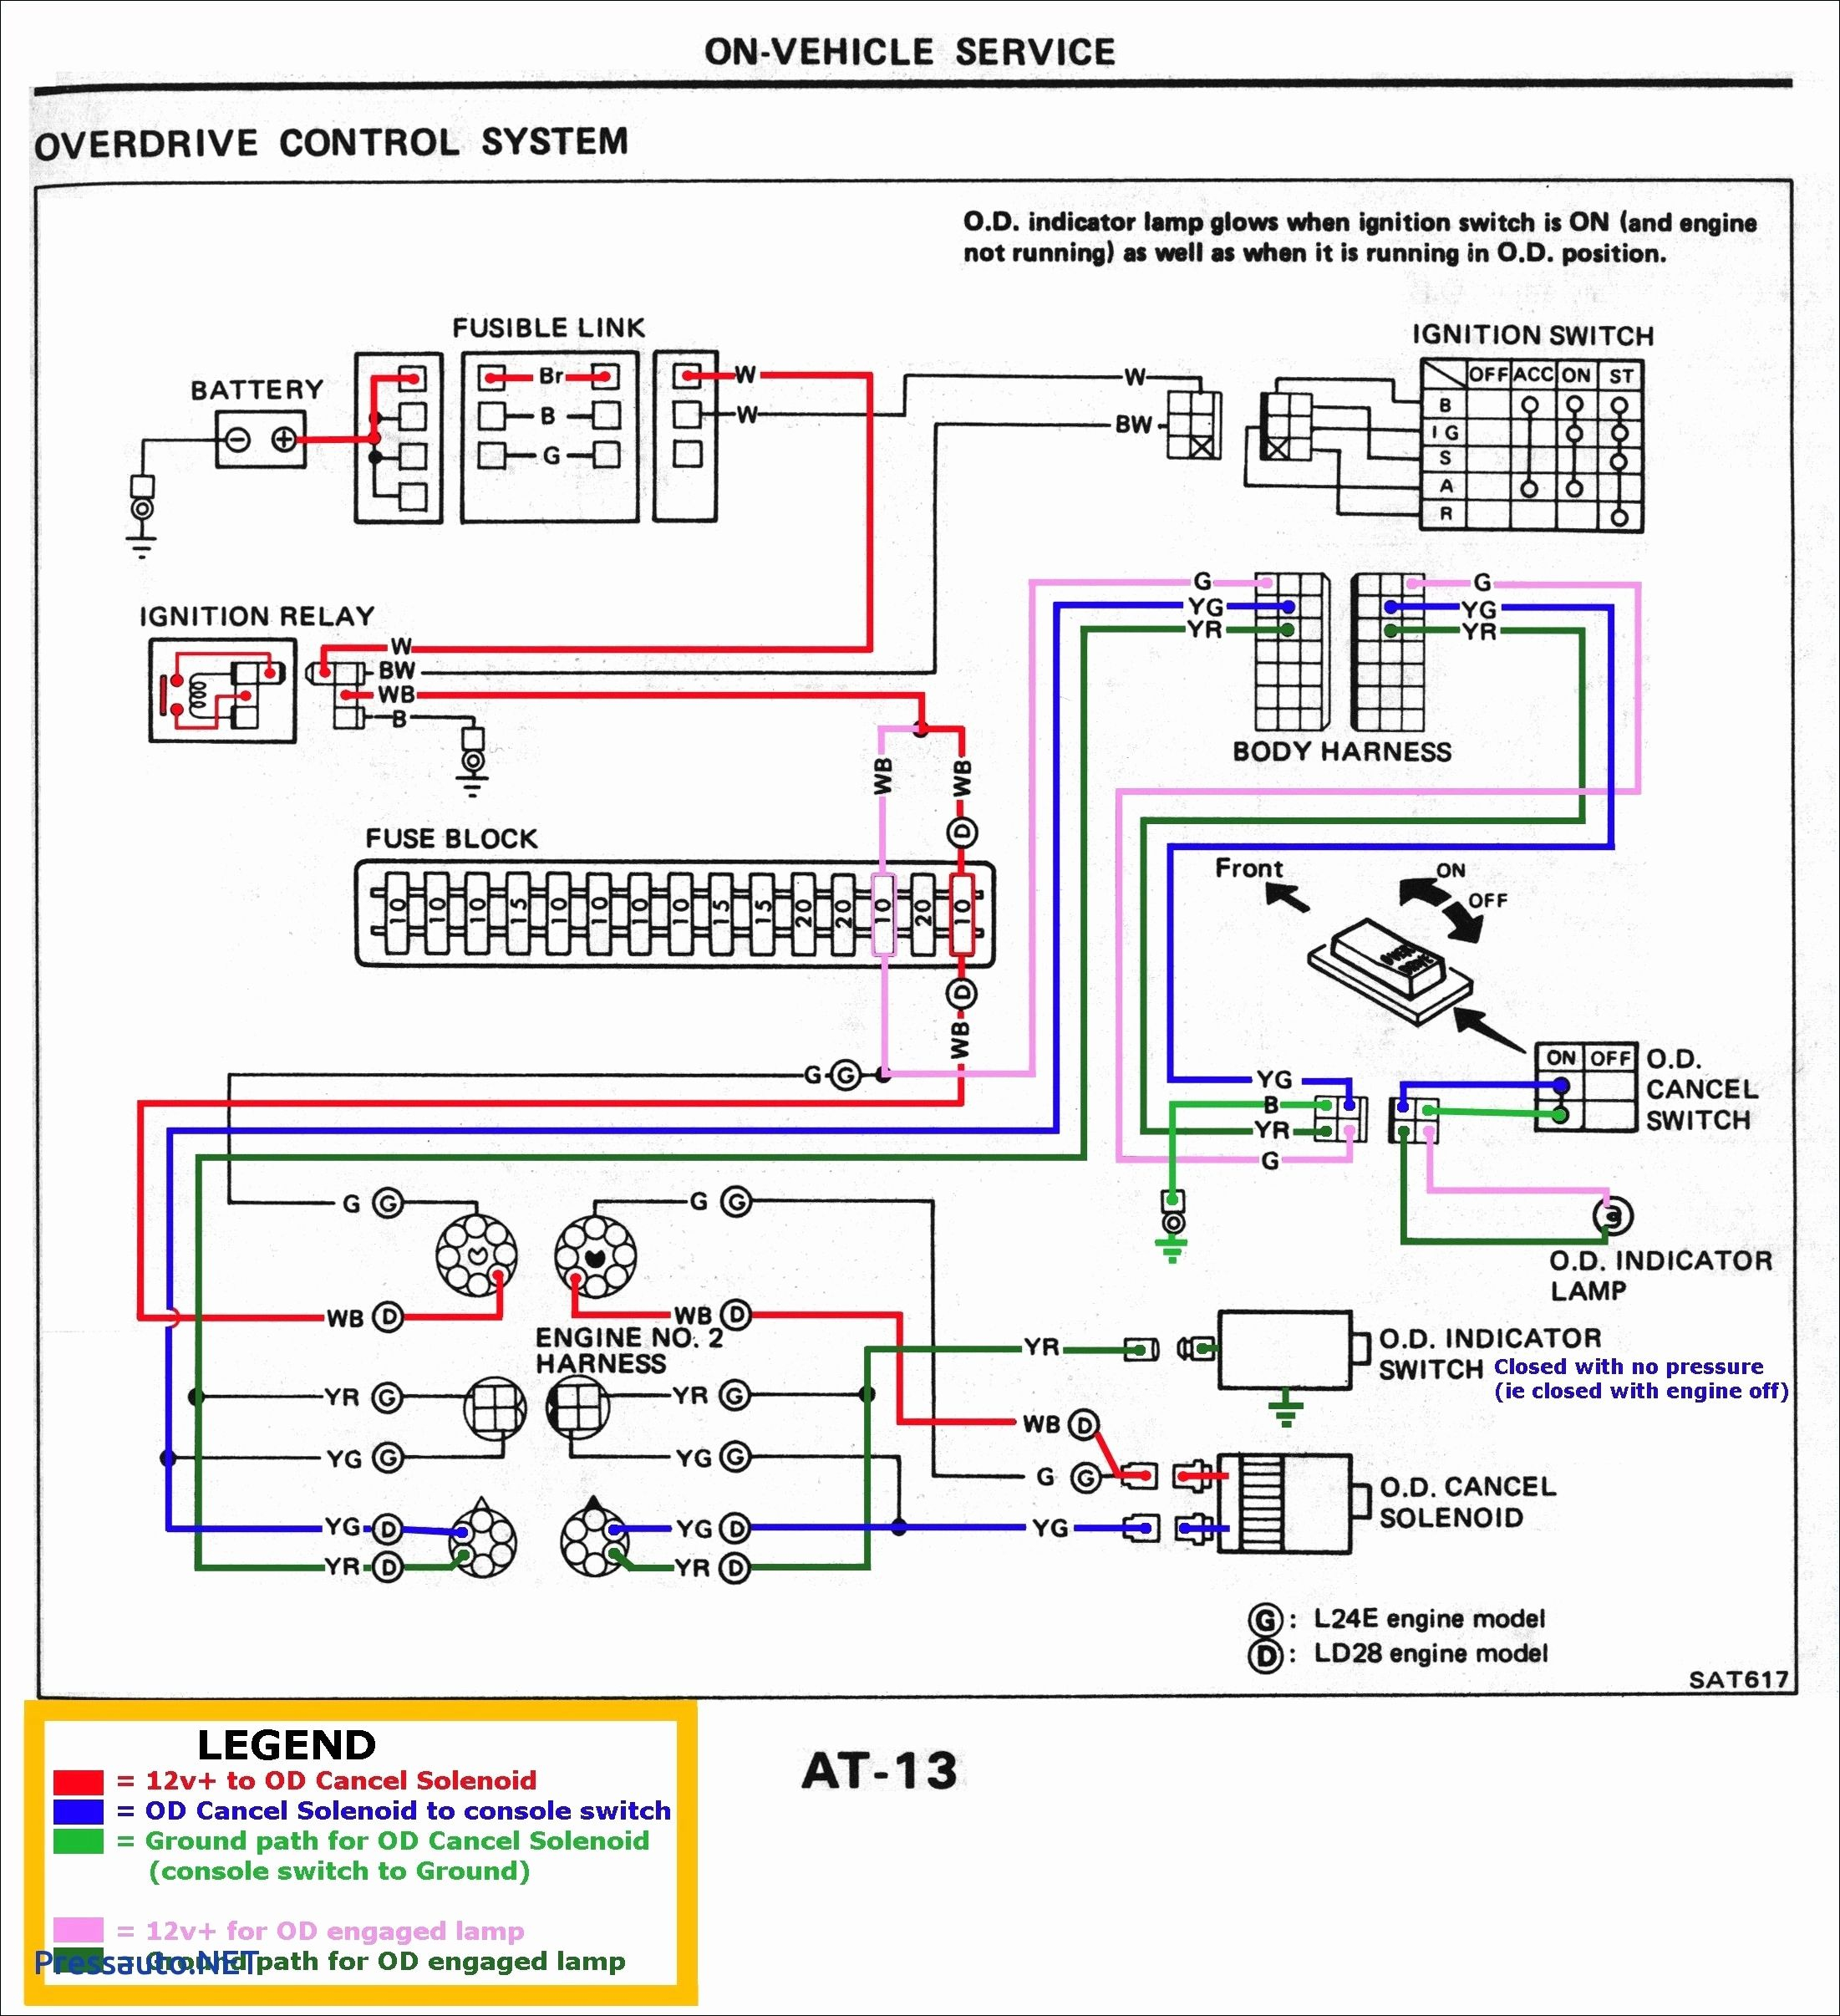 Nest Thermostat Wire Diagram Inspirational Nest Wiring Diagram Heat - Heat Pump With Nest Wiring Diagram